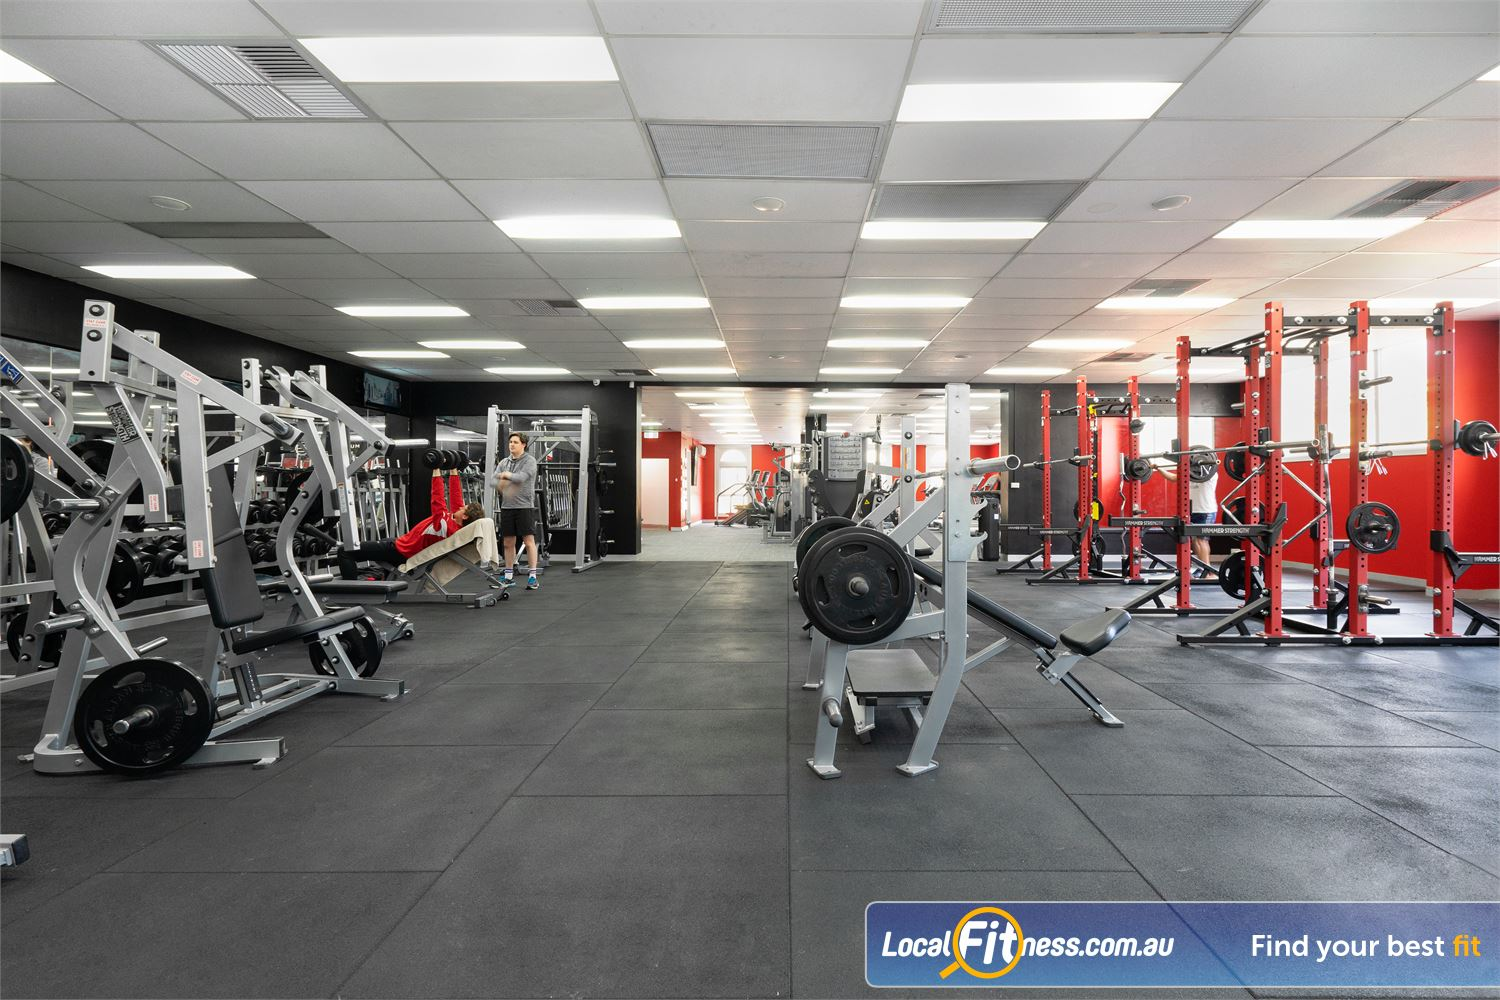 Equilibrium Health & Fitness 24/7 North Melbourne Our 24/7 North Melbourne gym is open day and night for members.